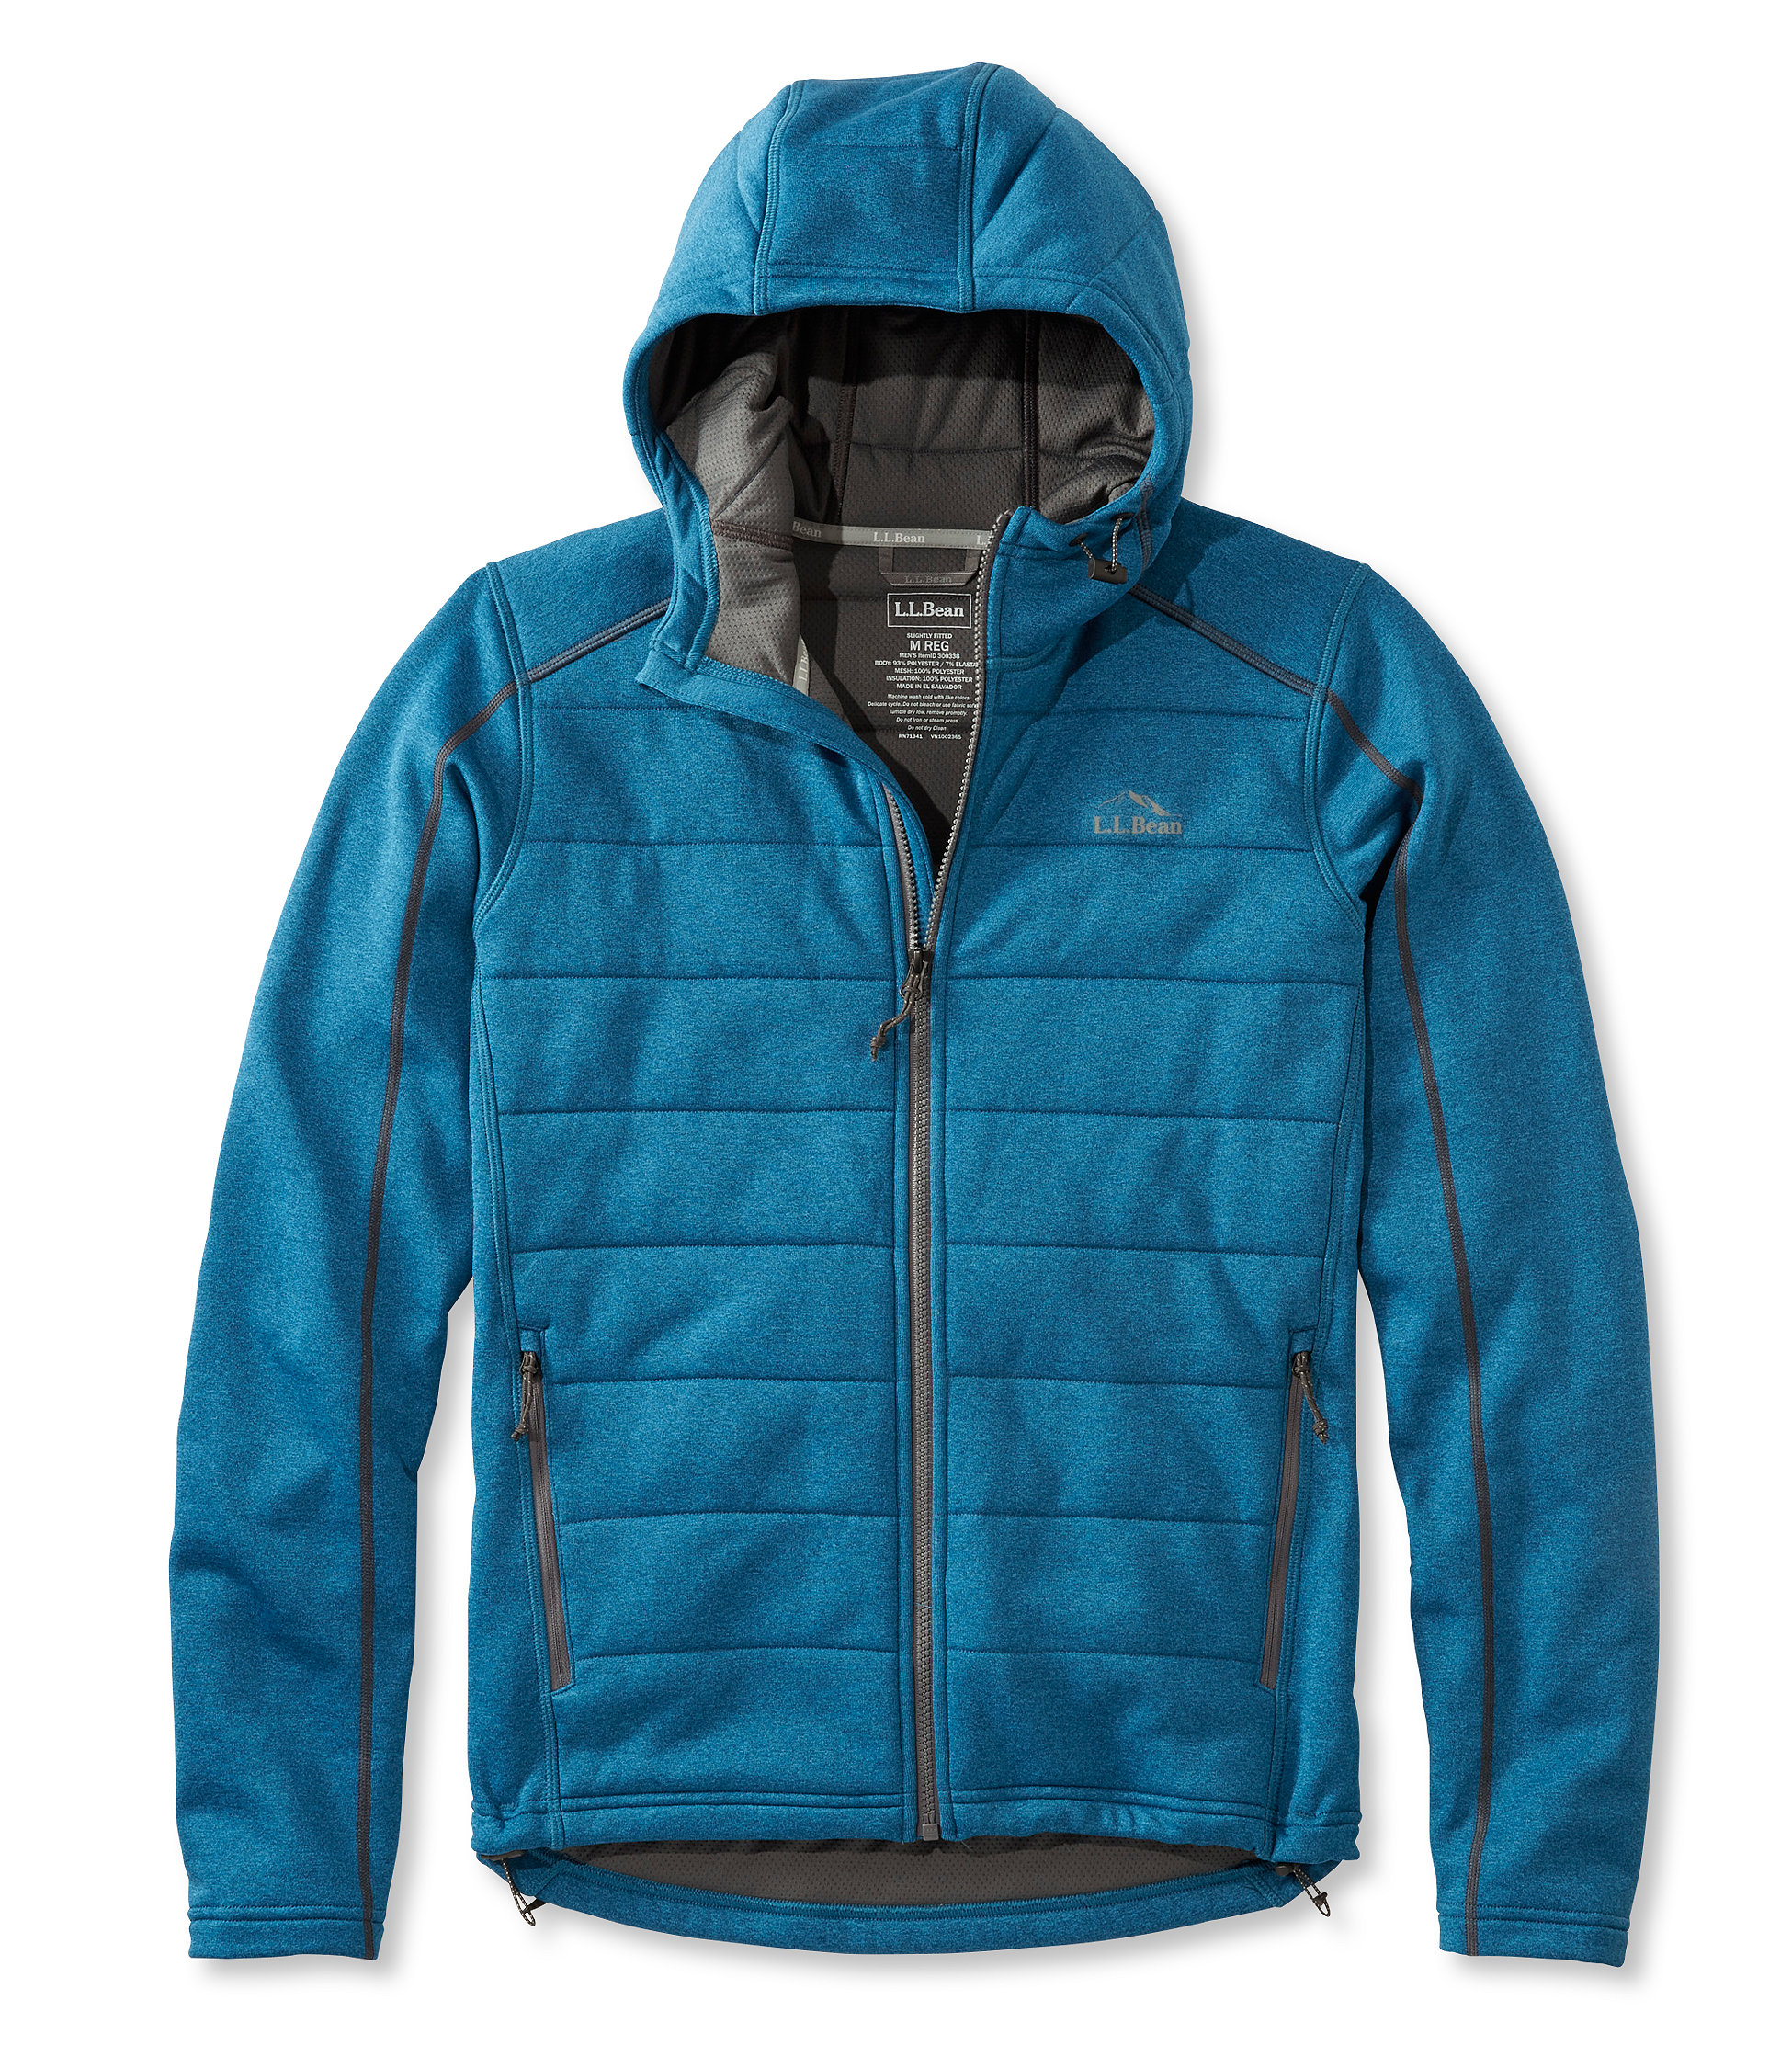 L.L.Bean Mountain Pro Hoodie Full-Zip